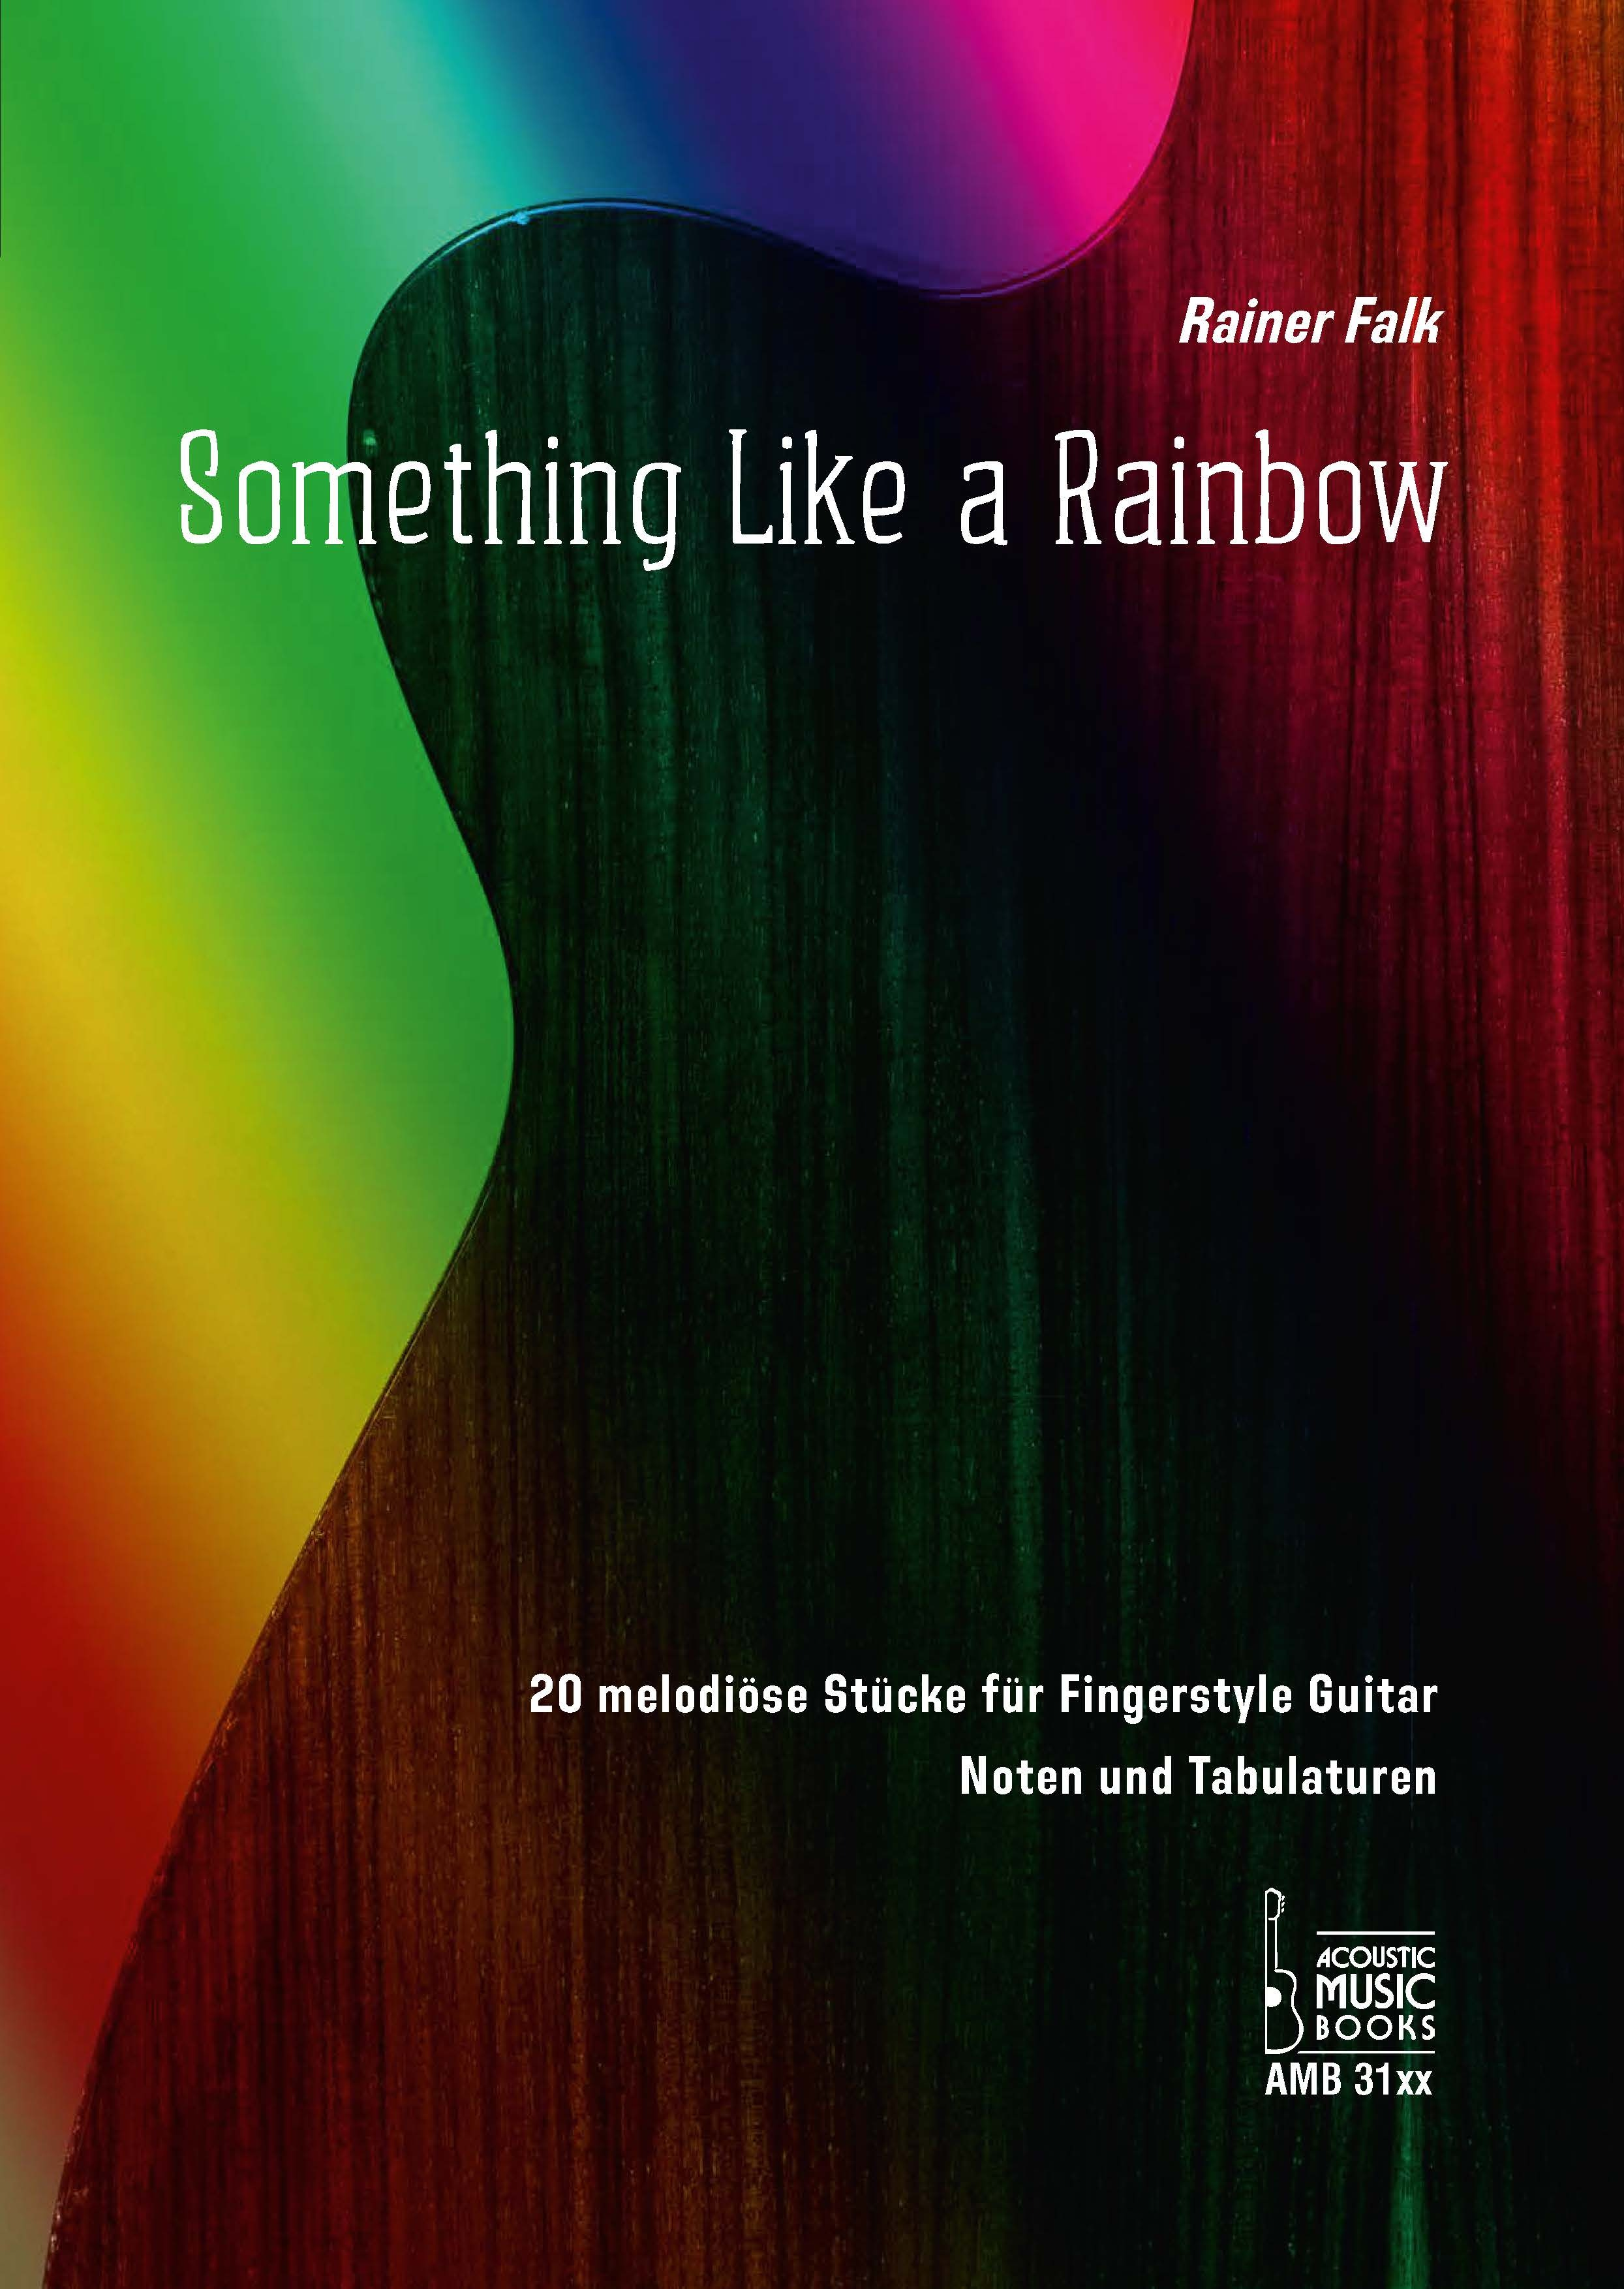 Rainer_Falk_-_Something_Like_a_Rainbow_2_klein